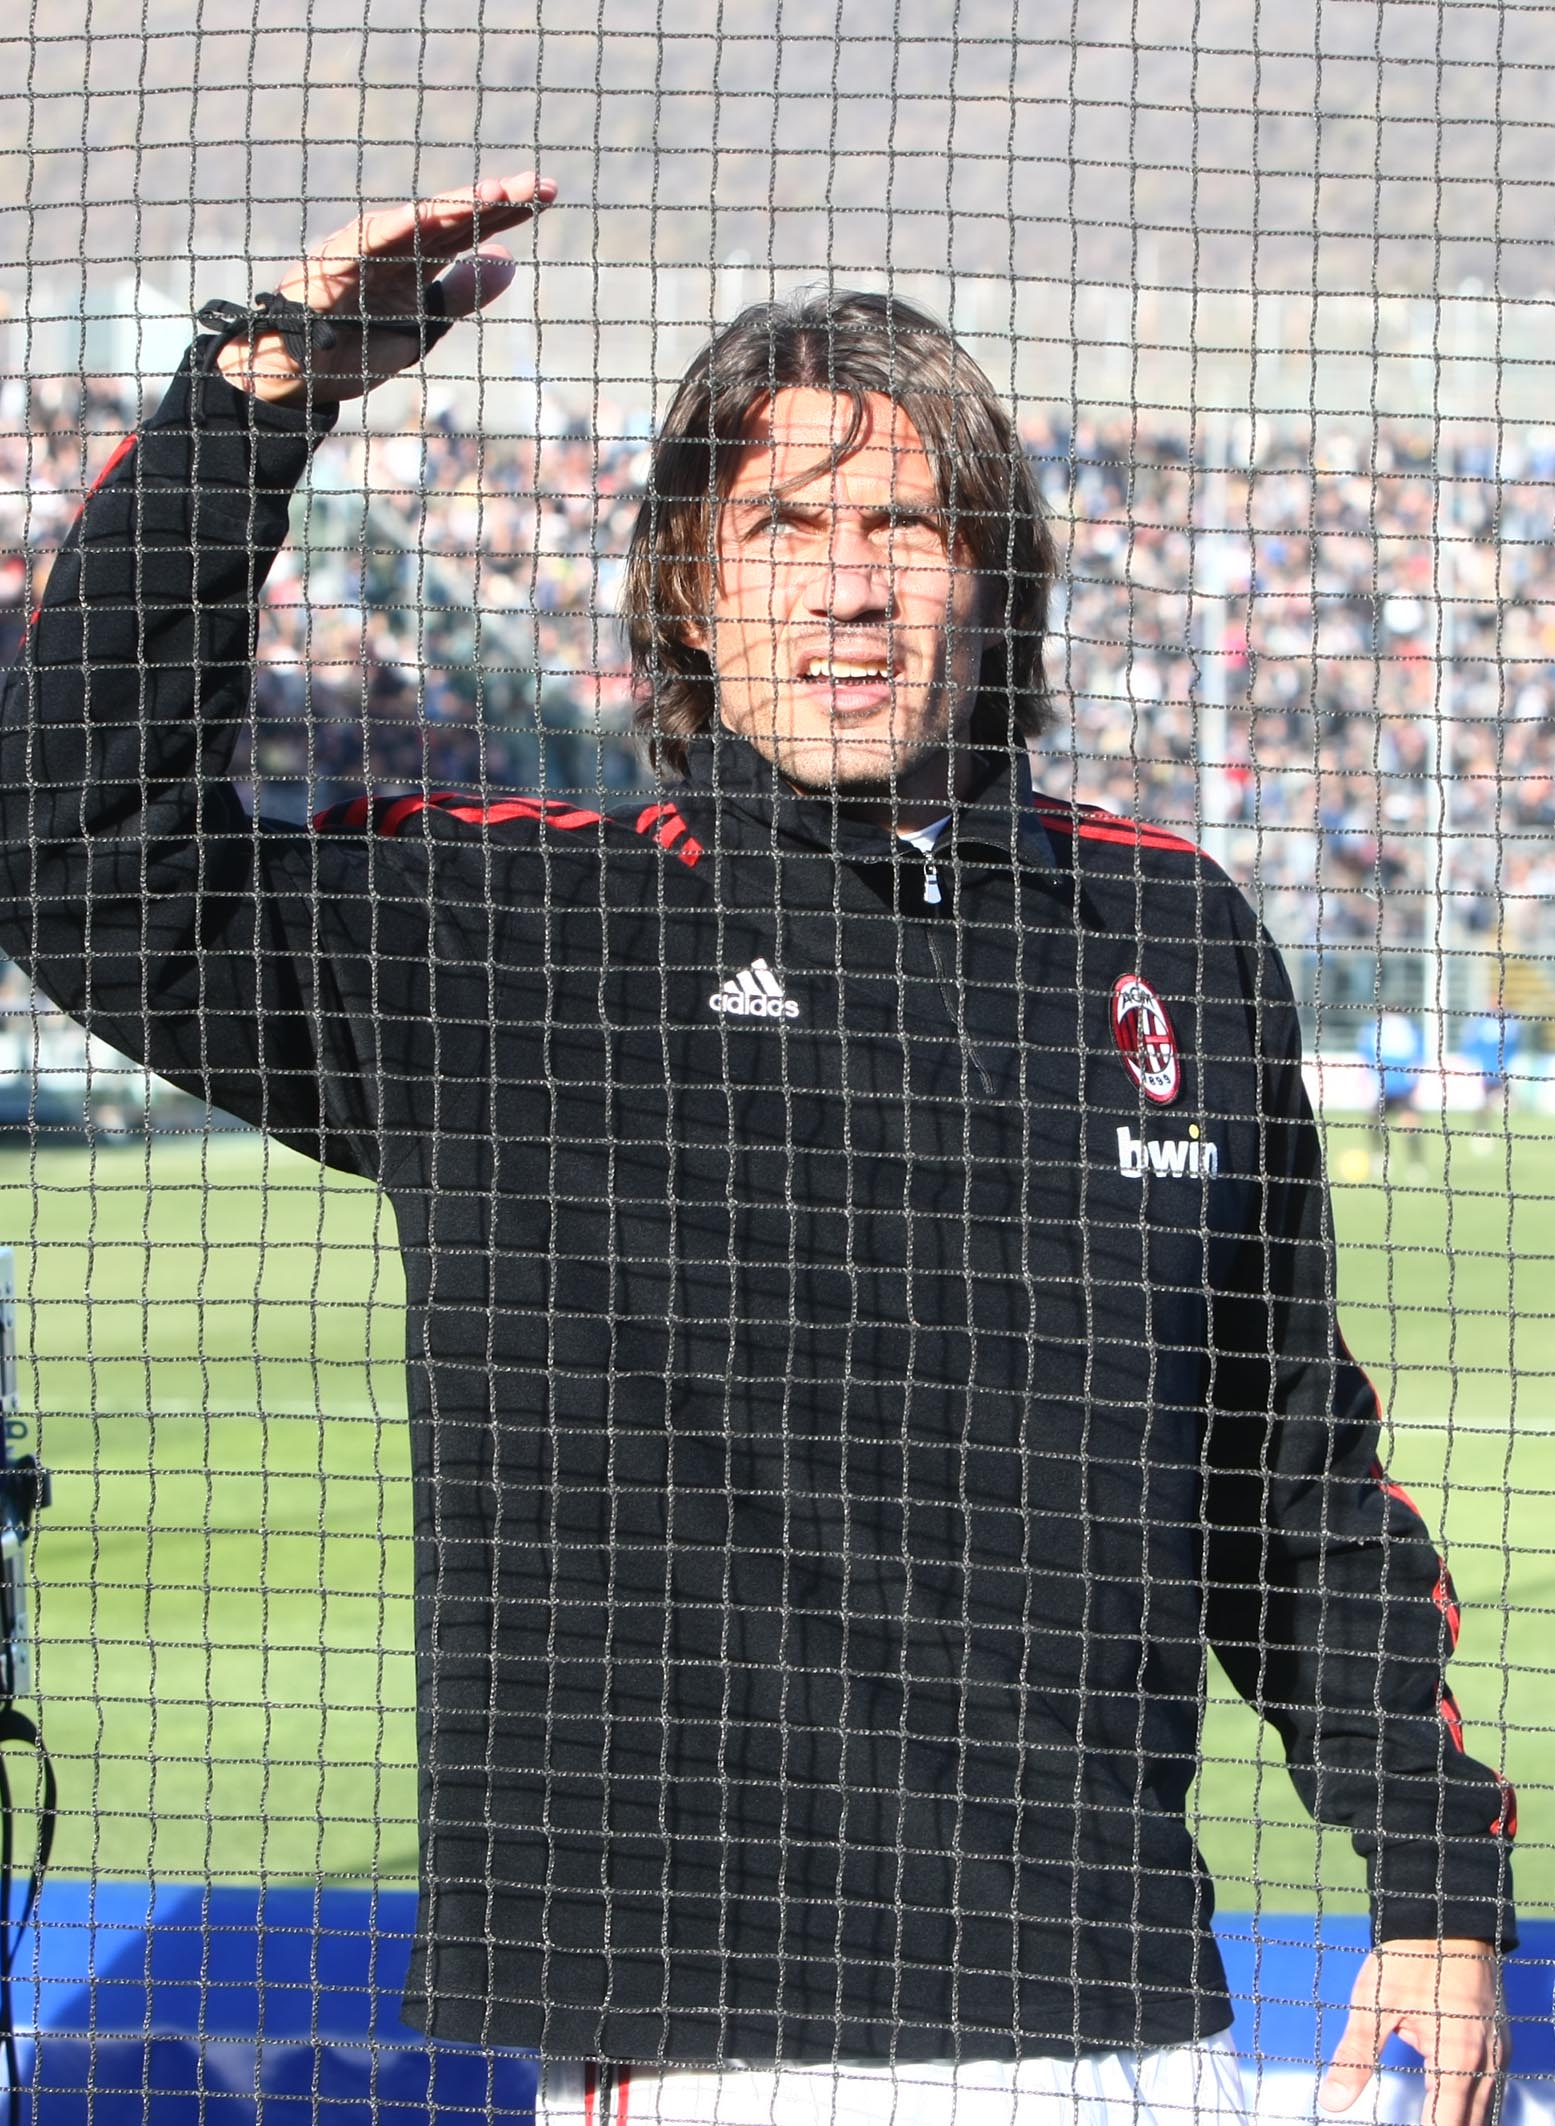 BERGAMO, ITALY - NOVEMBER 11:  Paulo Maldini of Milan looks on as fans riot at the Serie A match between Atalanta and AC Milan on November 11, 2007 in Bergamo, Italy. The match was suspended after seven minutes when Atalanta fans tried to break through a